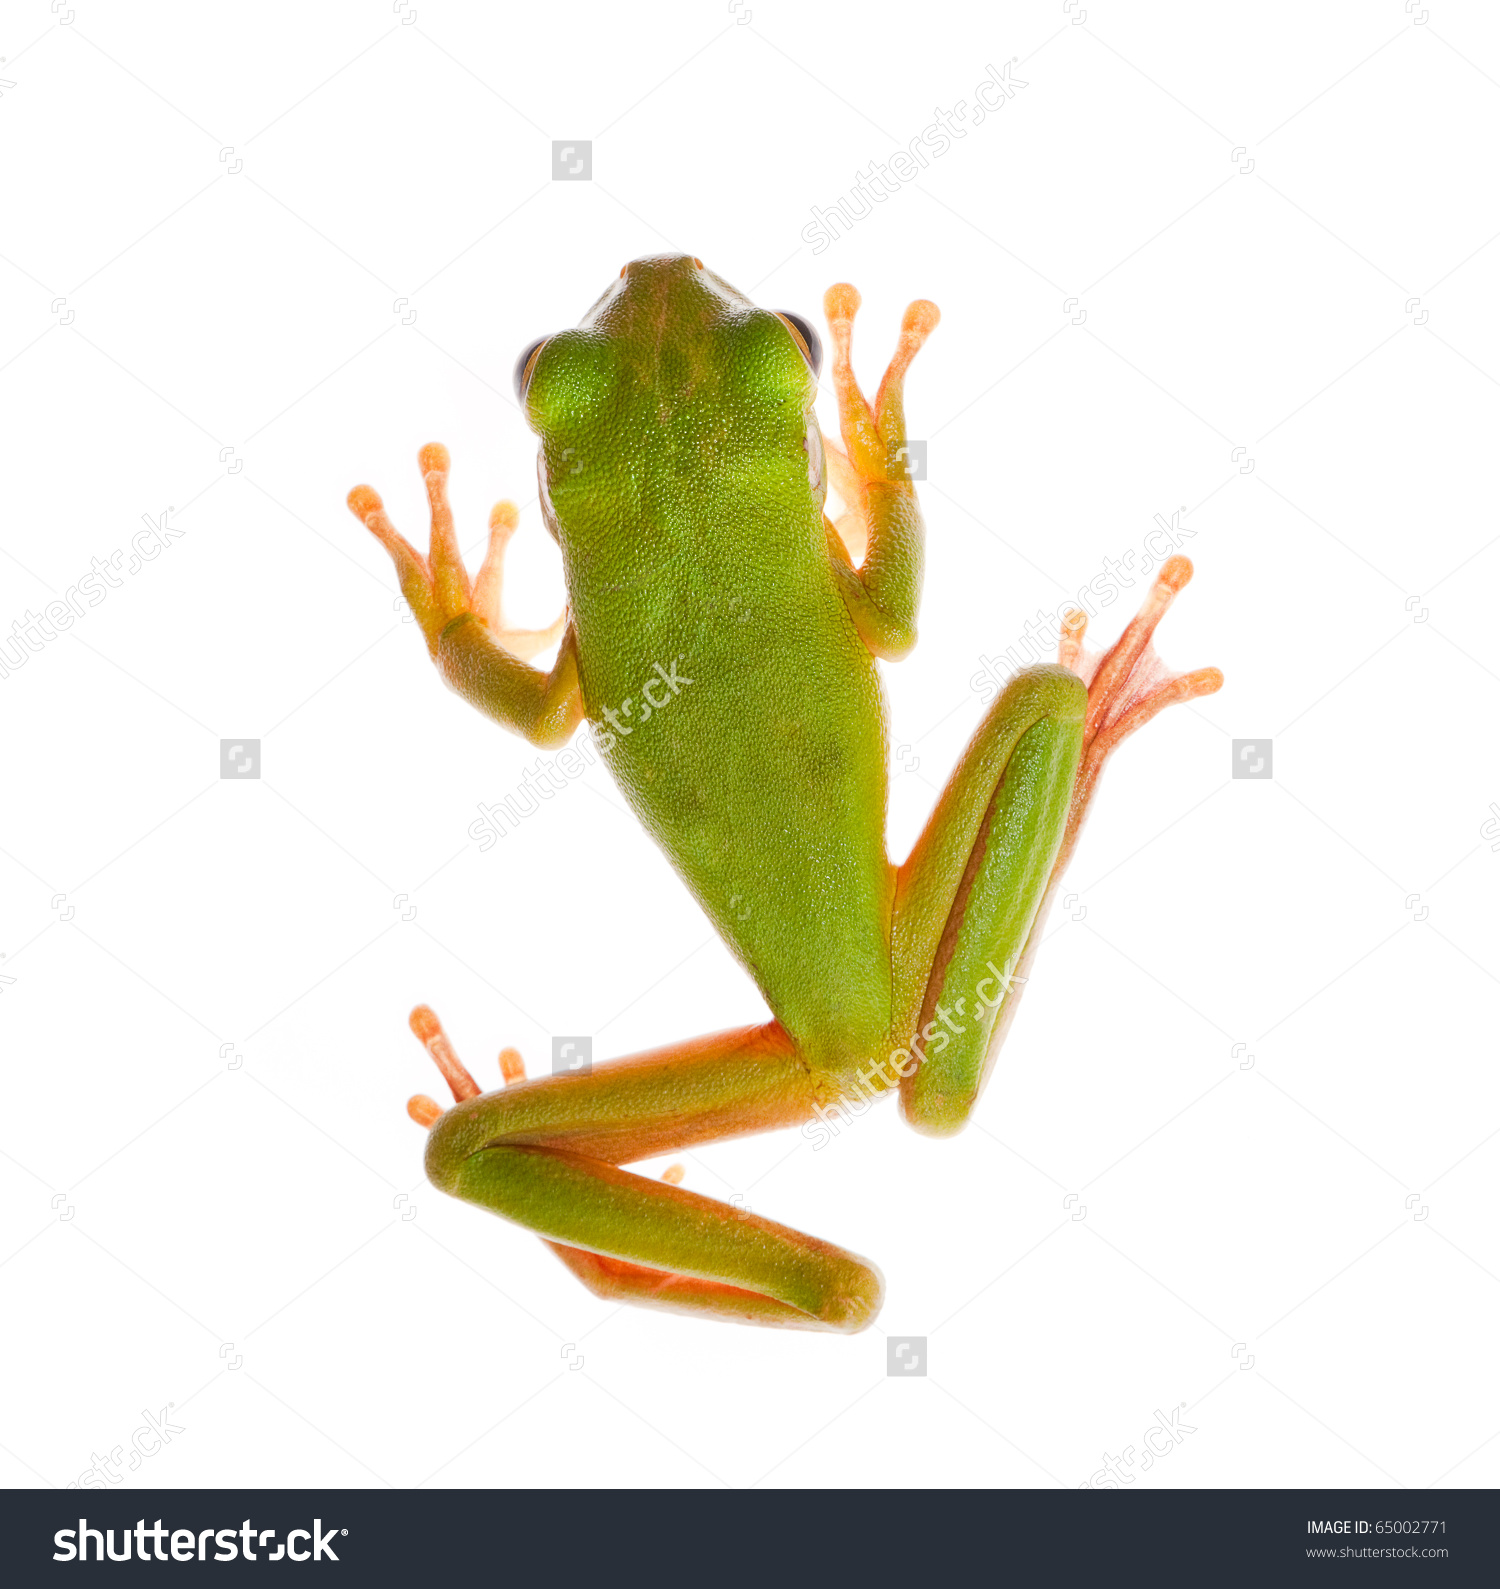 White-lipped Tree Frog clipart #19, Download drawings